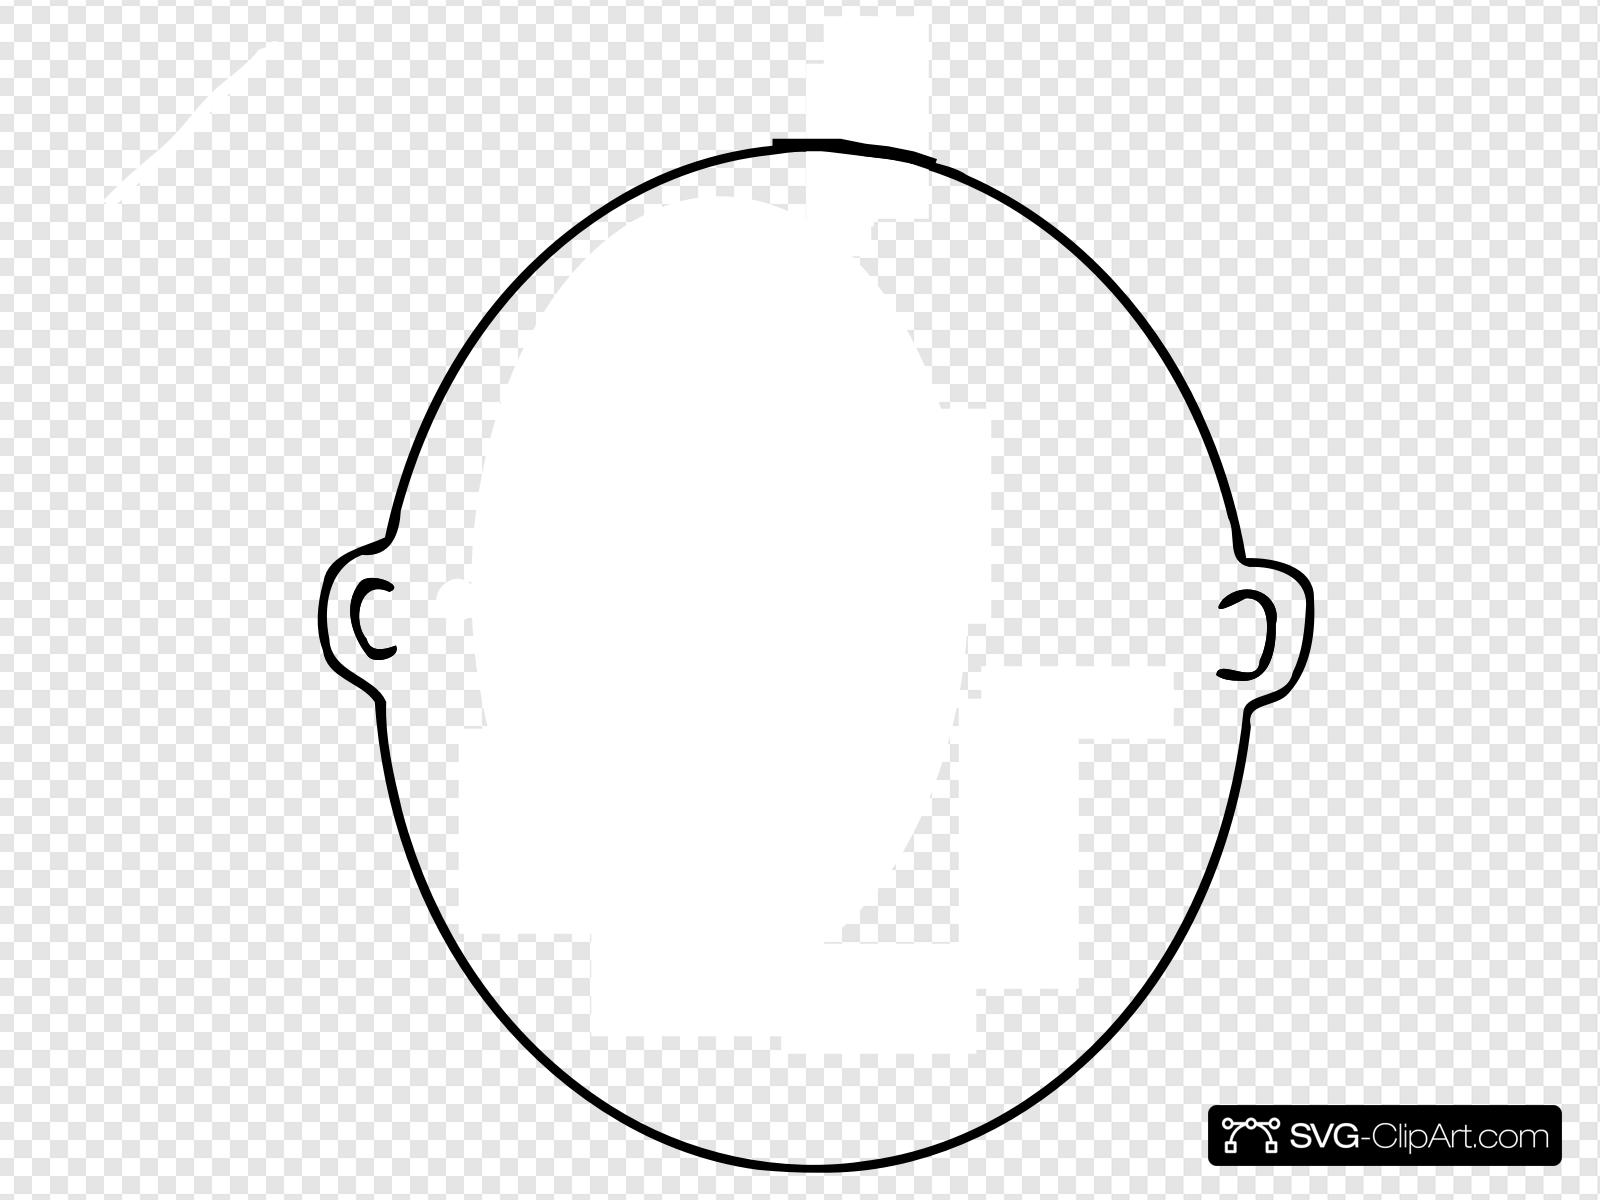 Blank Face Clip art, Icon and SVG.